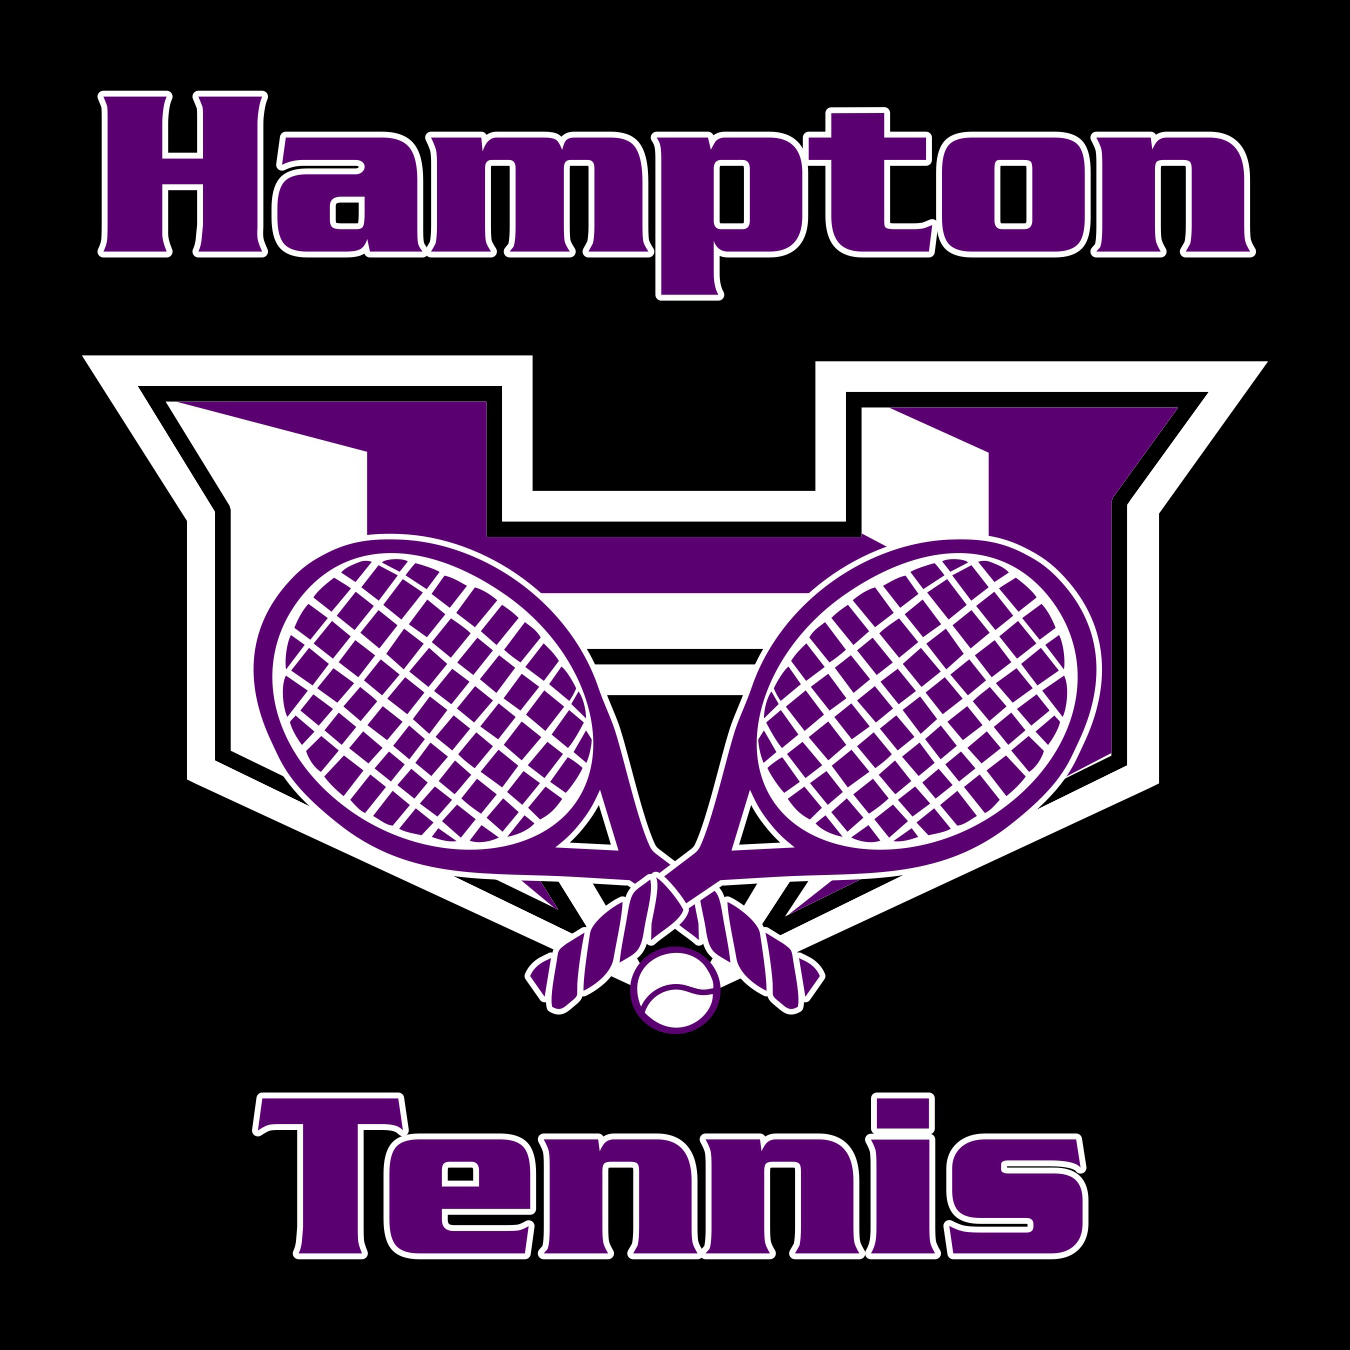 hampton tennis t-shirt design